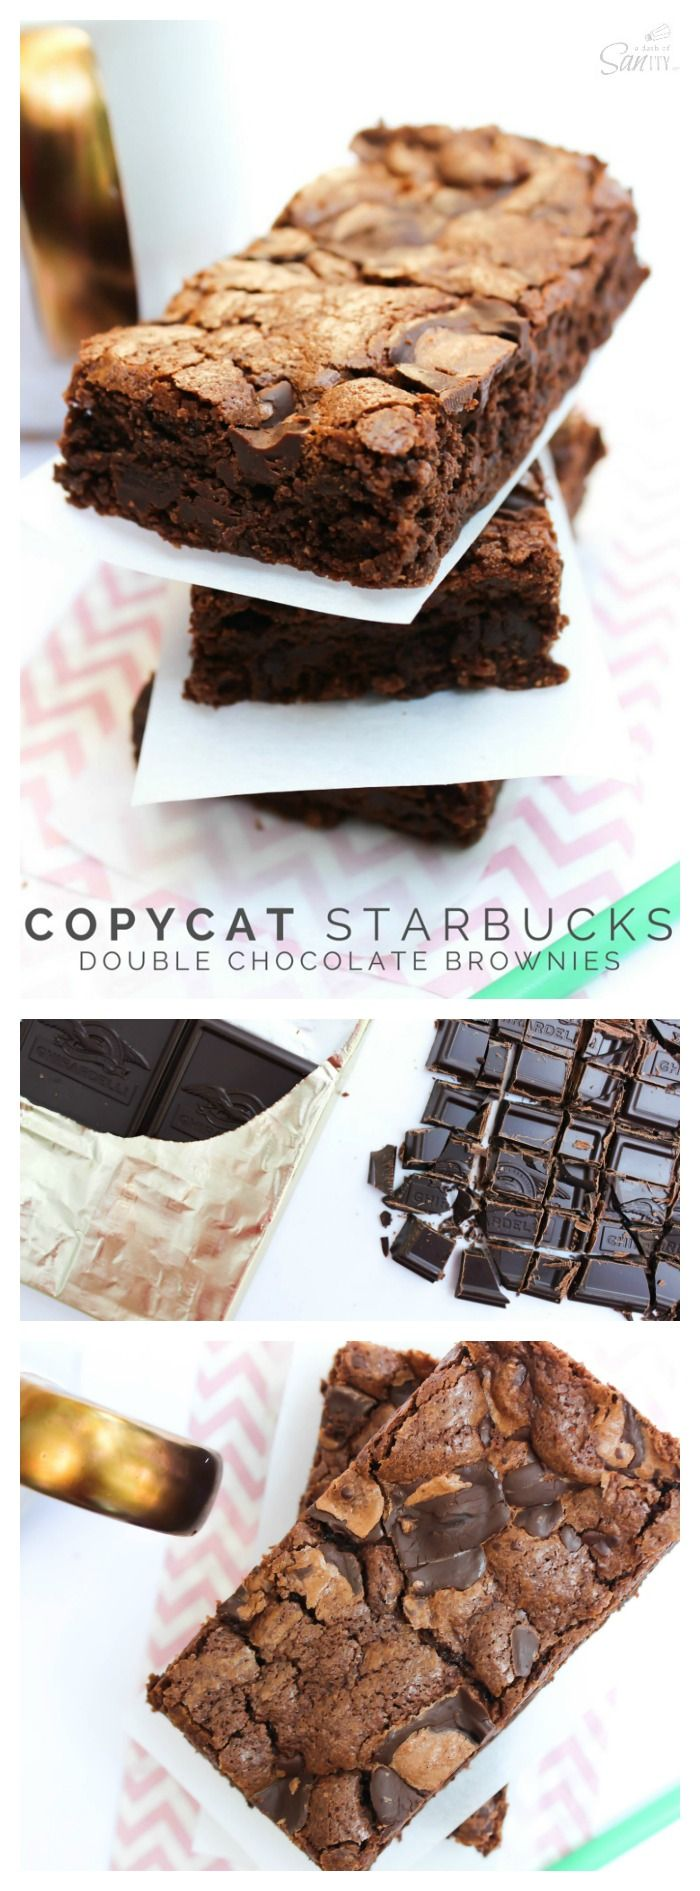 Copycat Starbucks Double Chocolate Brownies